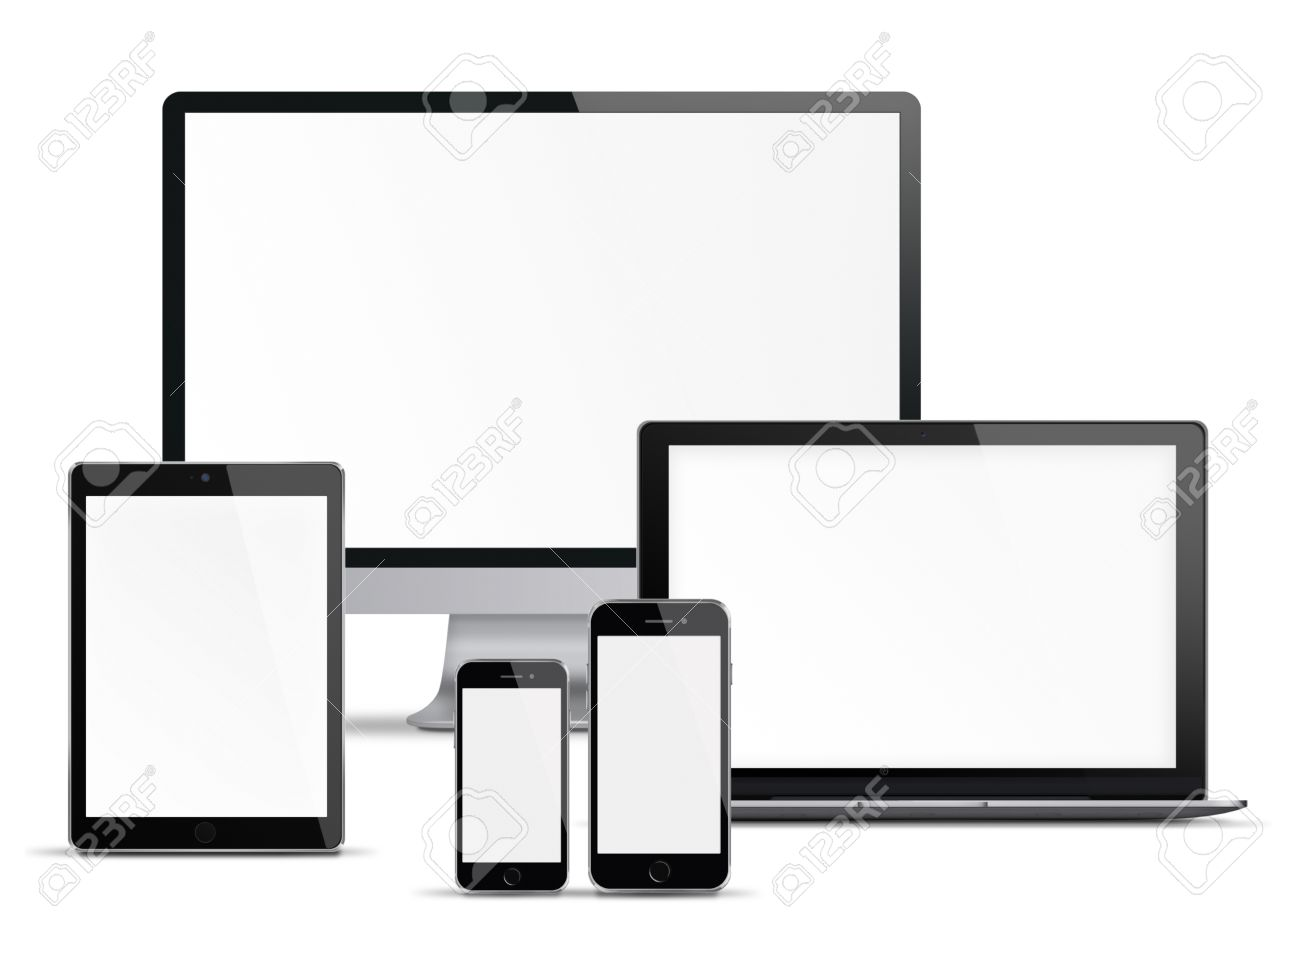 1300x975 Computer Monitor, Mobile Phone, Smartphone, Laptop And Tablet